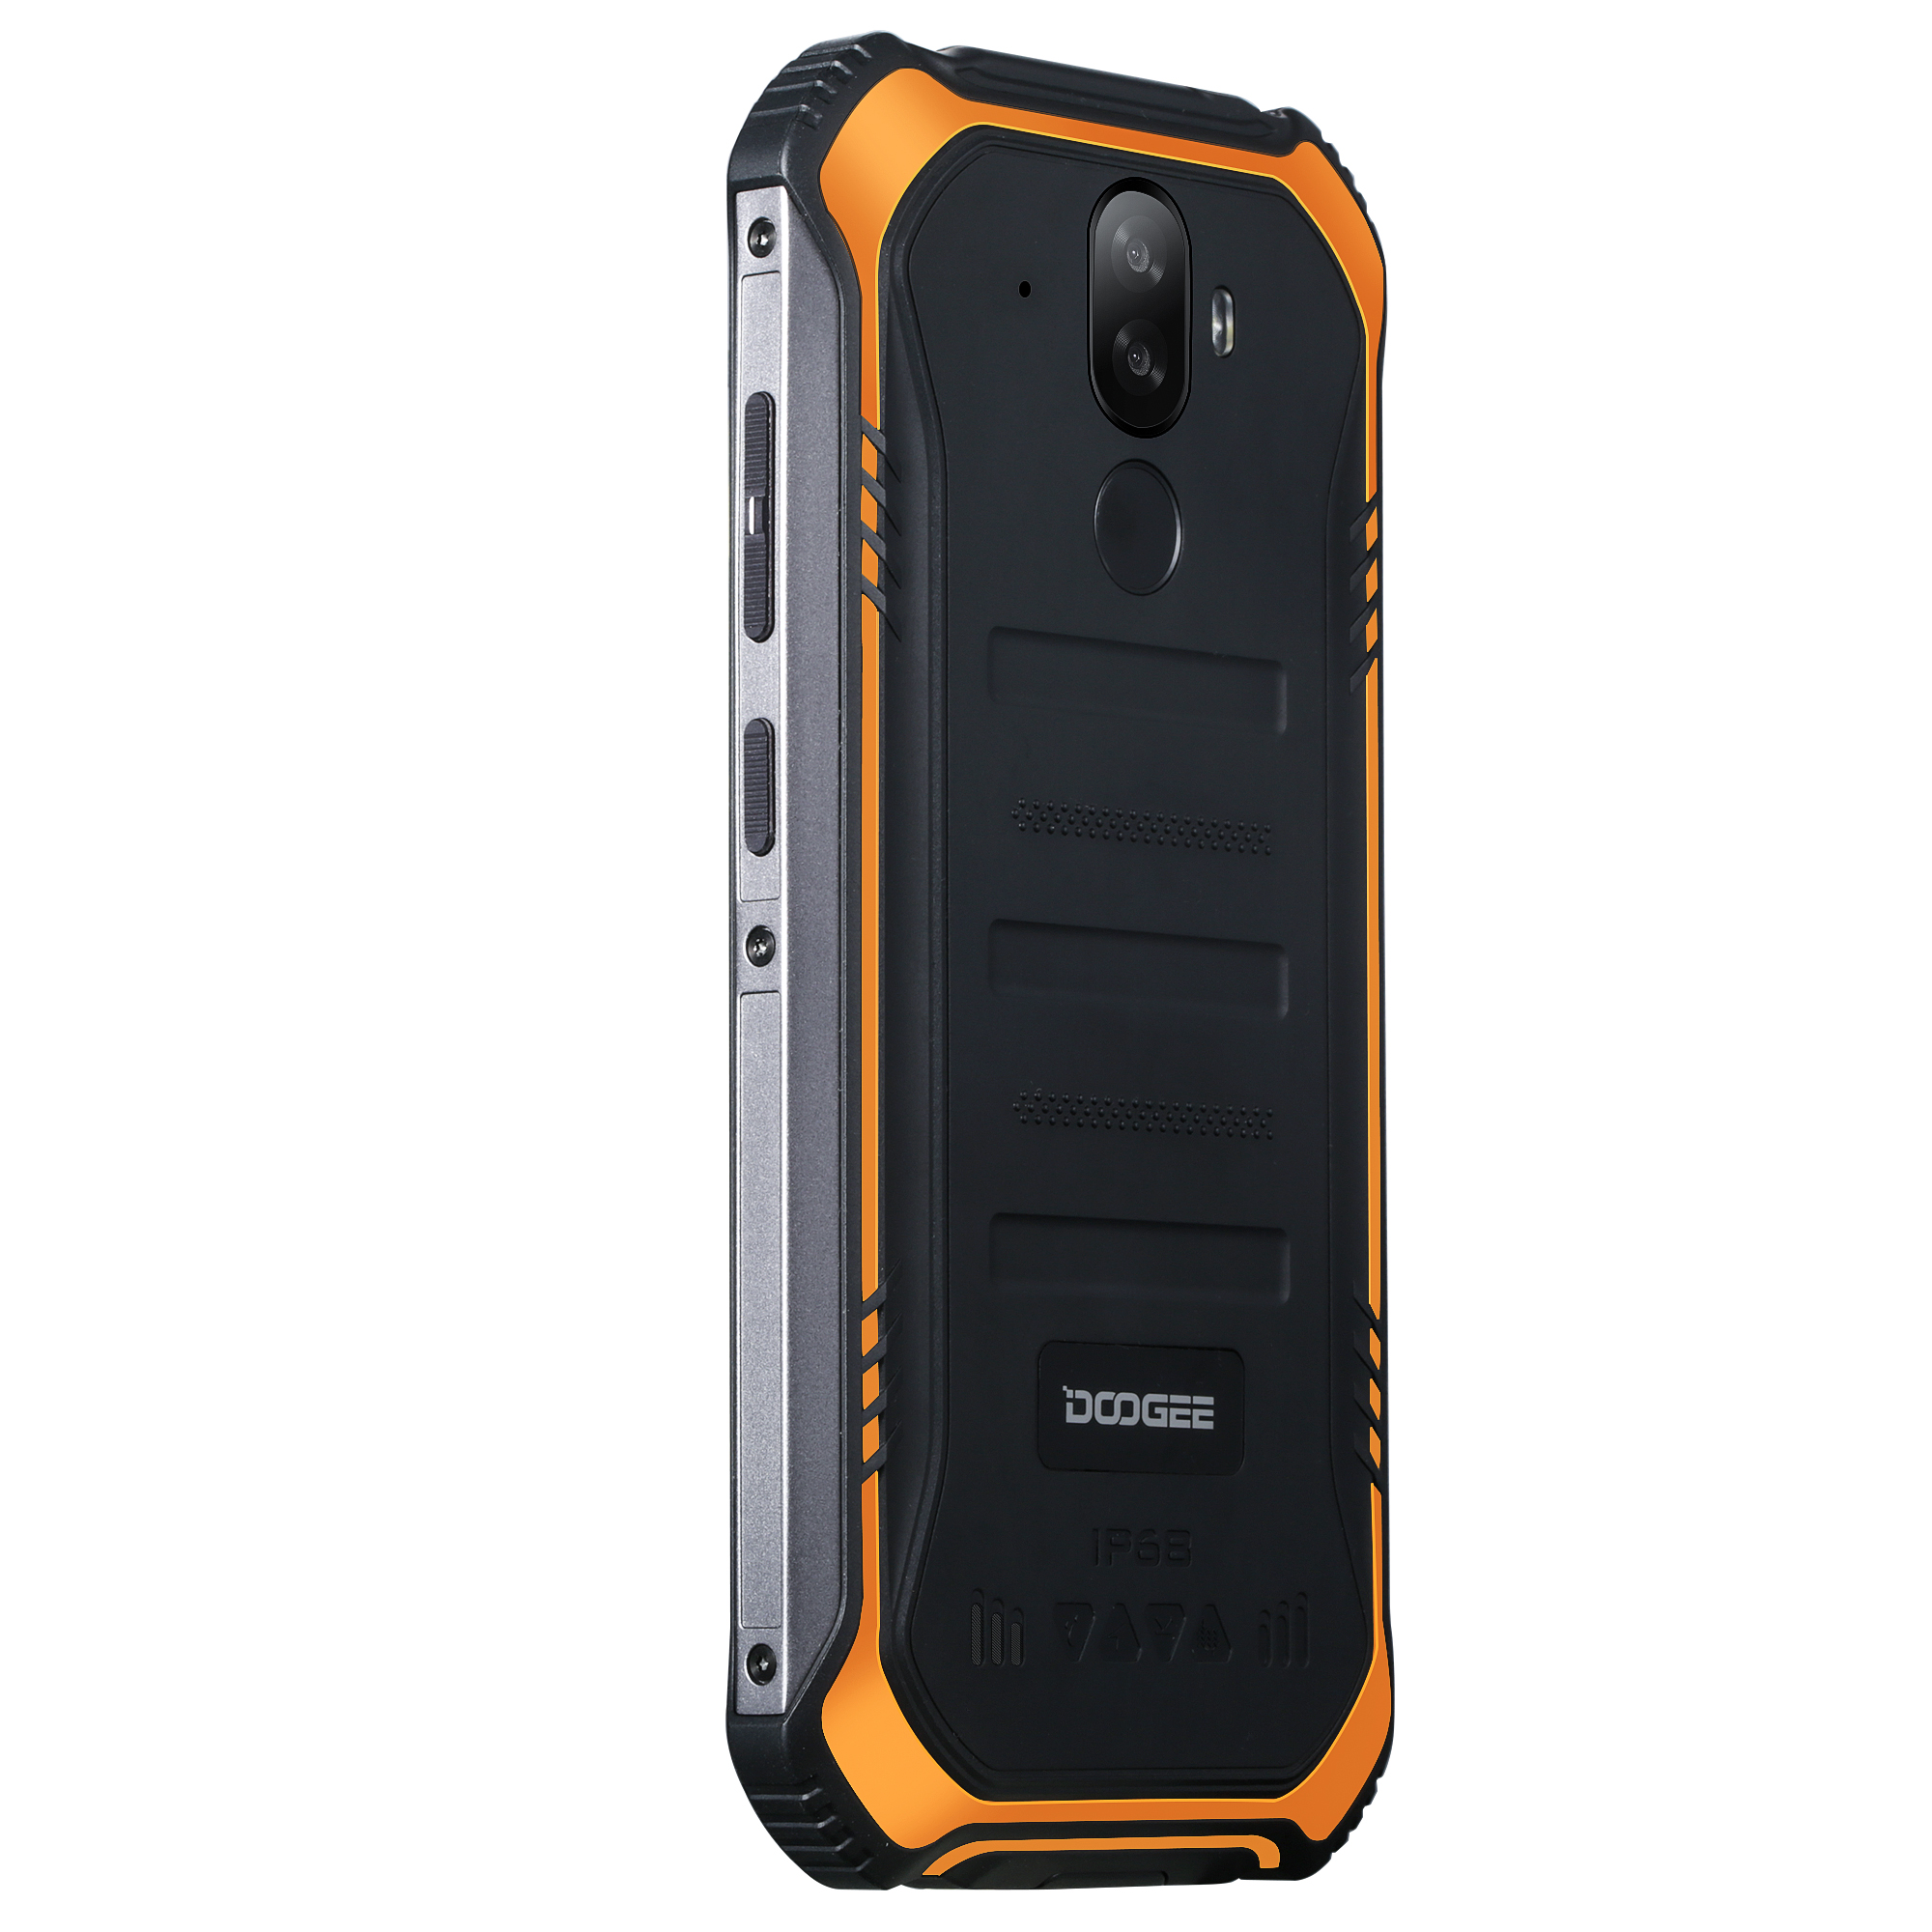 Image 4 - DOOGEE S40 S40 Lite IP68/IP69K Rugged Mobile Phone 5.5 Inch Android 9.0 Smartphone MT6739 Quad Core Cellphone 3GB 32GB 4650mAh-in Cellphones from Cellphones & Telecommunications